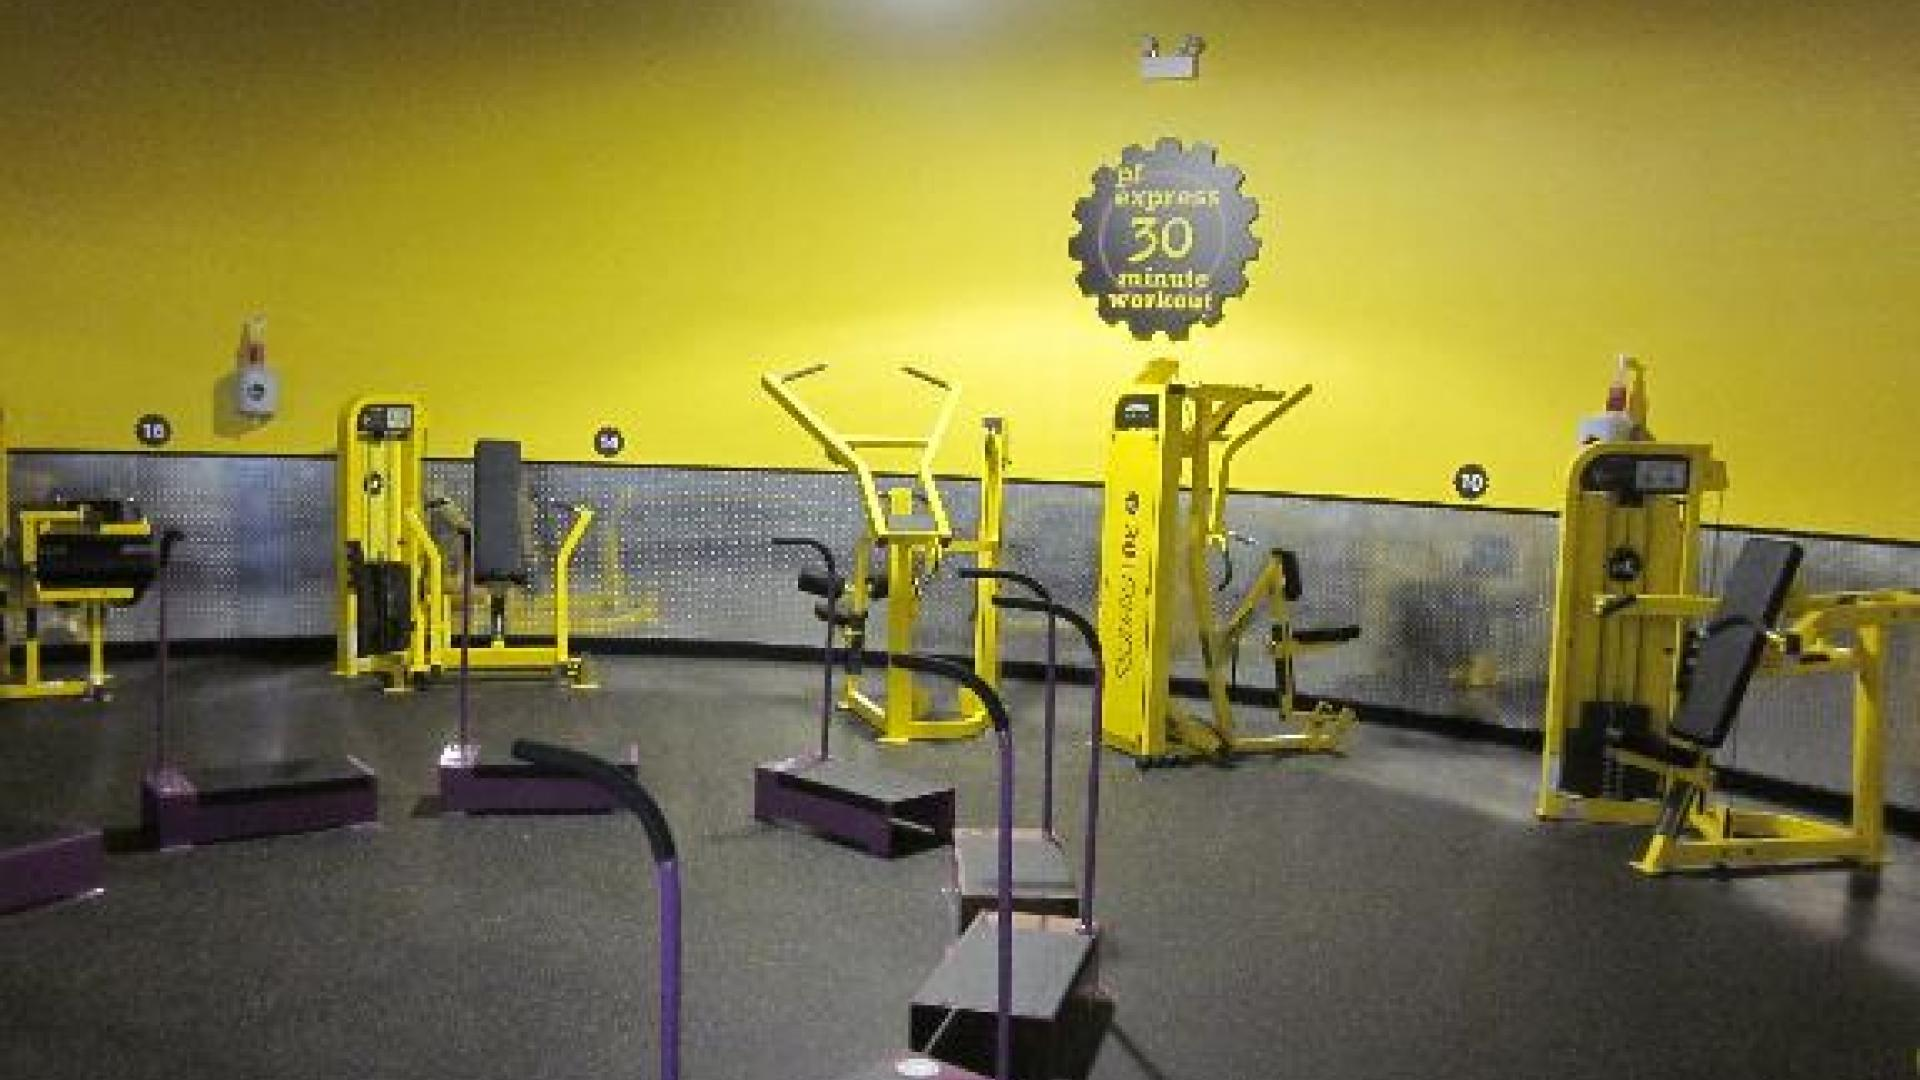 Fitness Mannheim Fitness Bar Morris Il Best Photos And Technic Imagepop Org